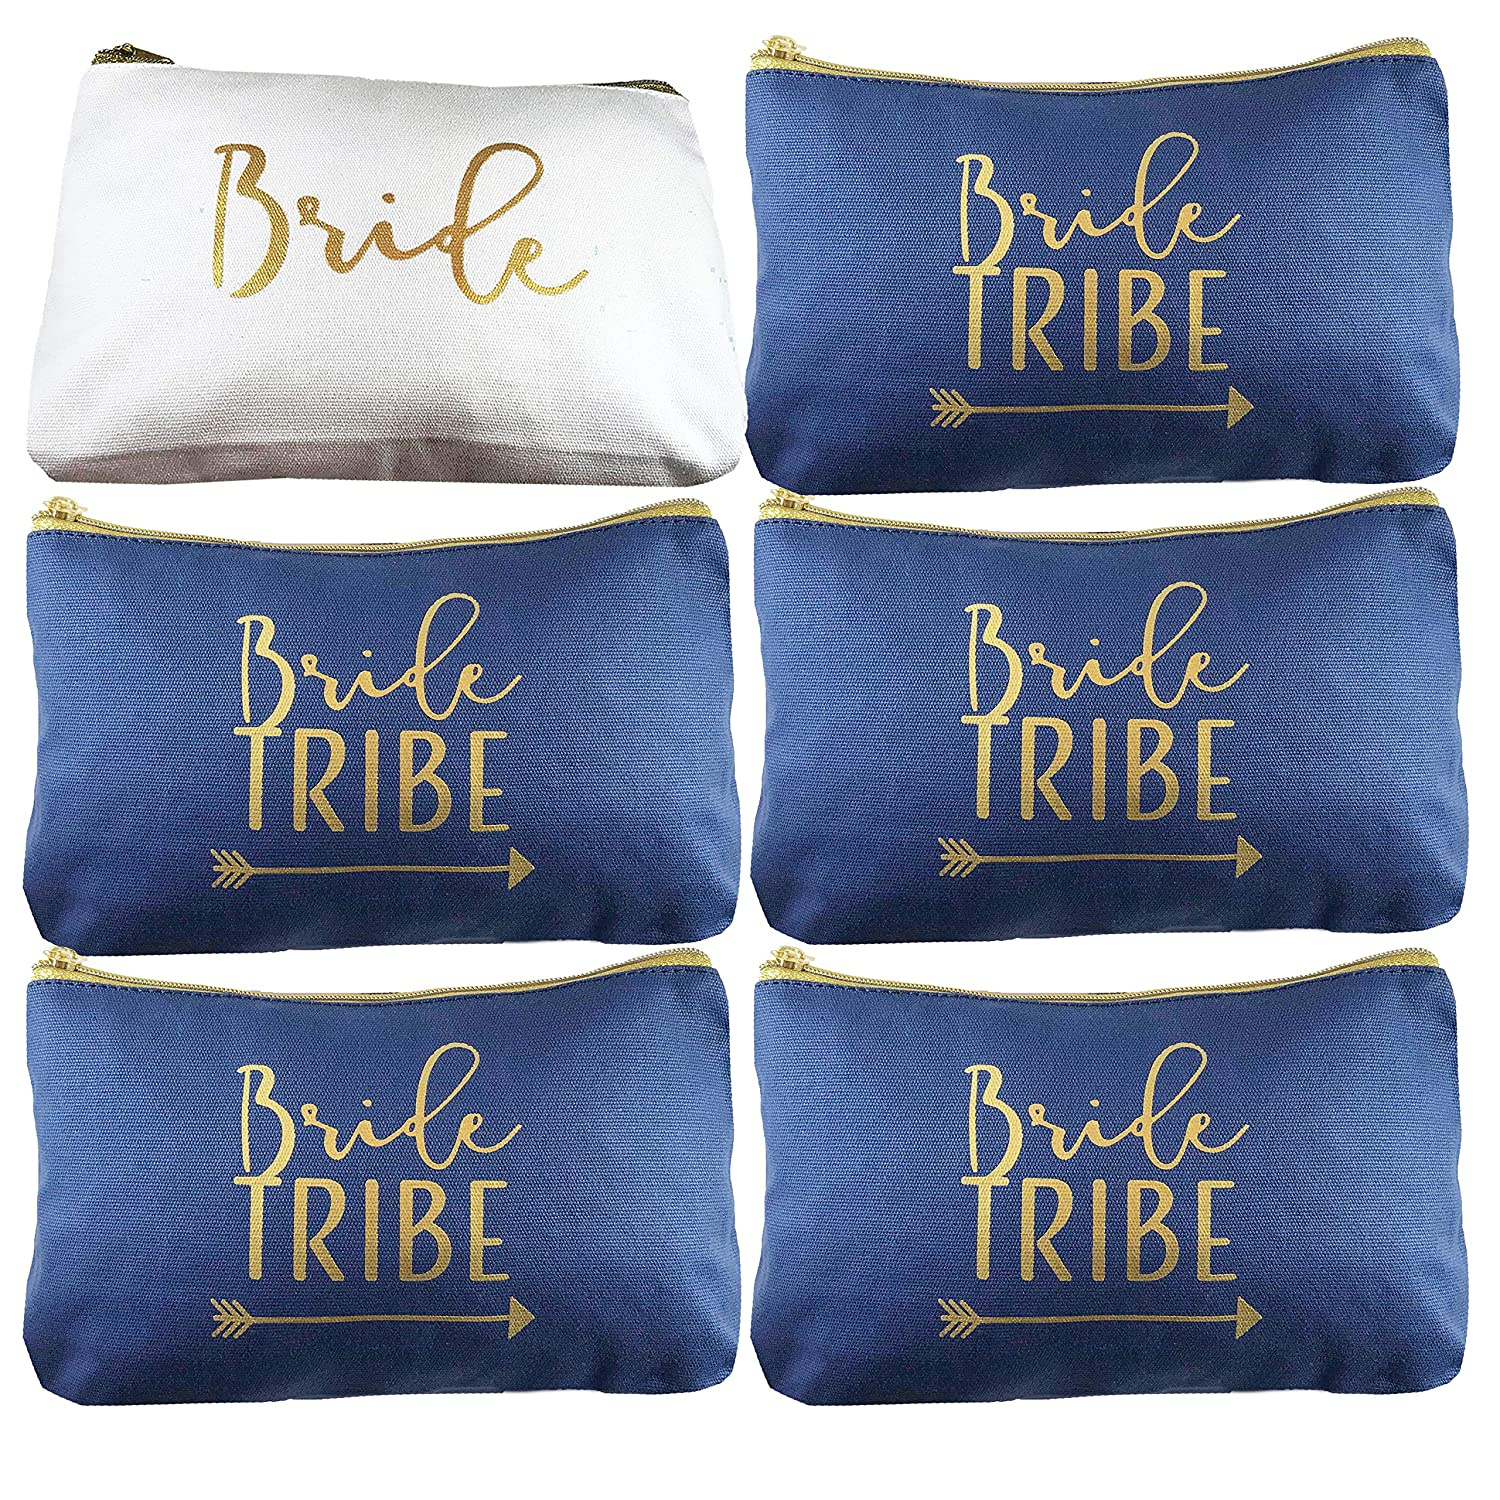 6 Piece Set Navy Blue Bride Tribe Canvas Cosmetic Makeup Clutch Gifts Bag for Bridesmaid Proposal Box Bridesmaids Bachelorette Party Favors